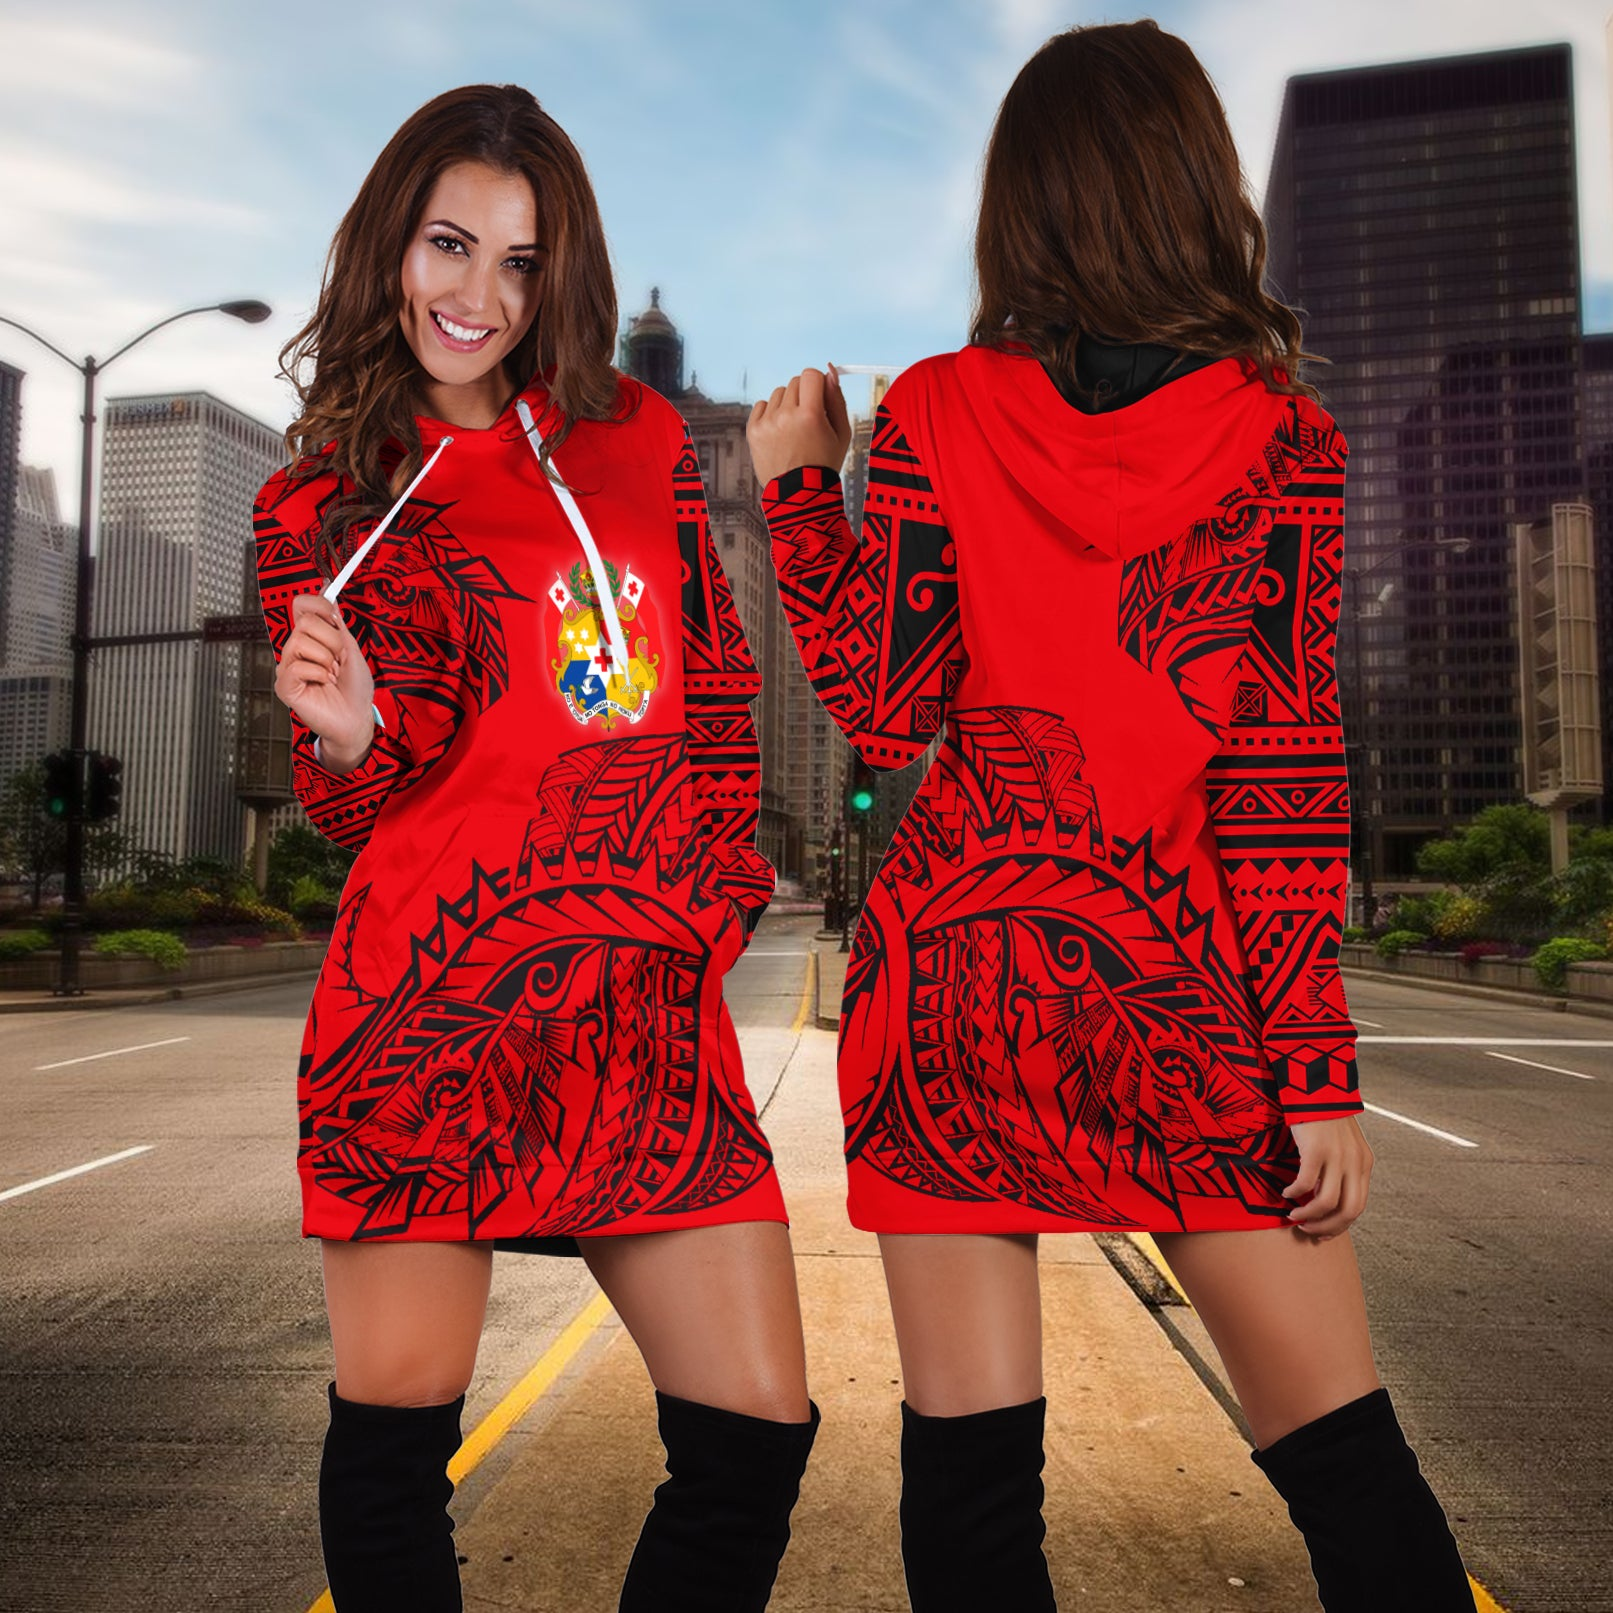 LIGERKIN POLYNESIAN TONGA YOUTHFUL DYNAMIC STYLE RED COLOR HOODIE DRESS